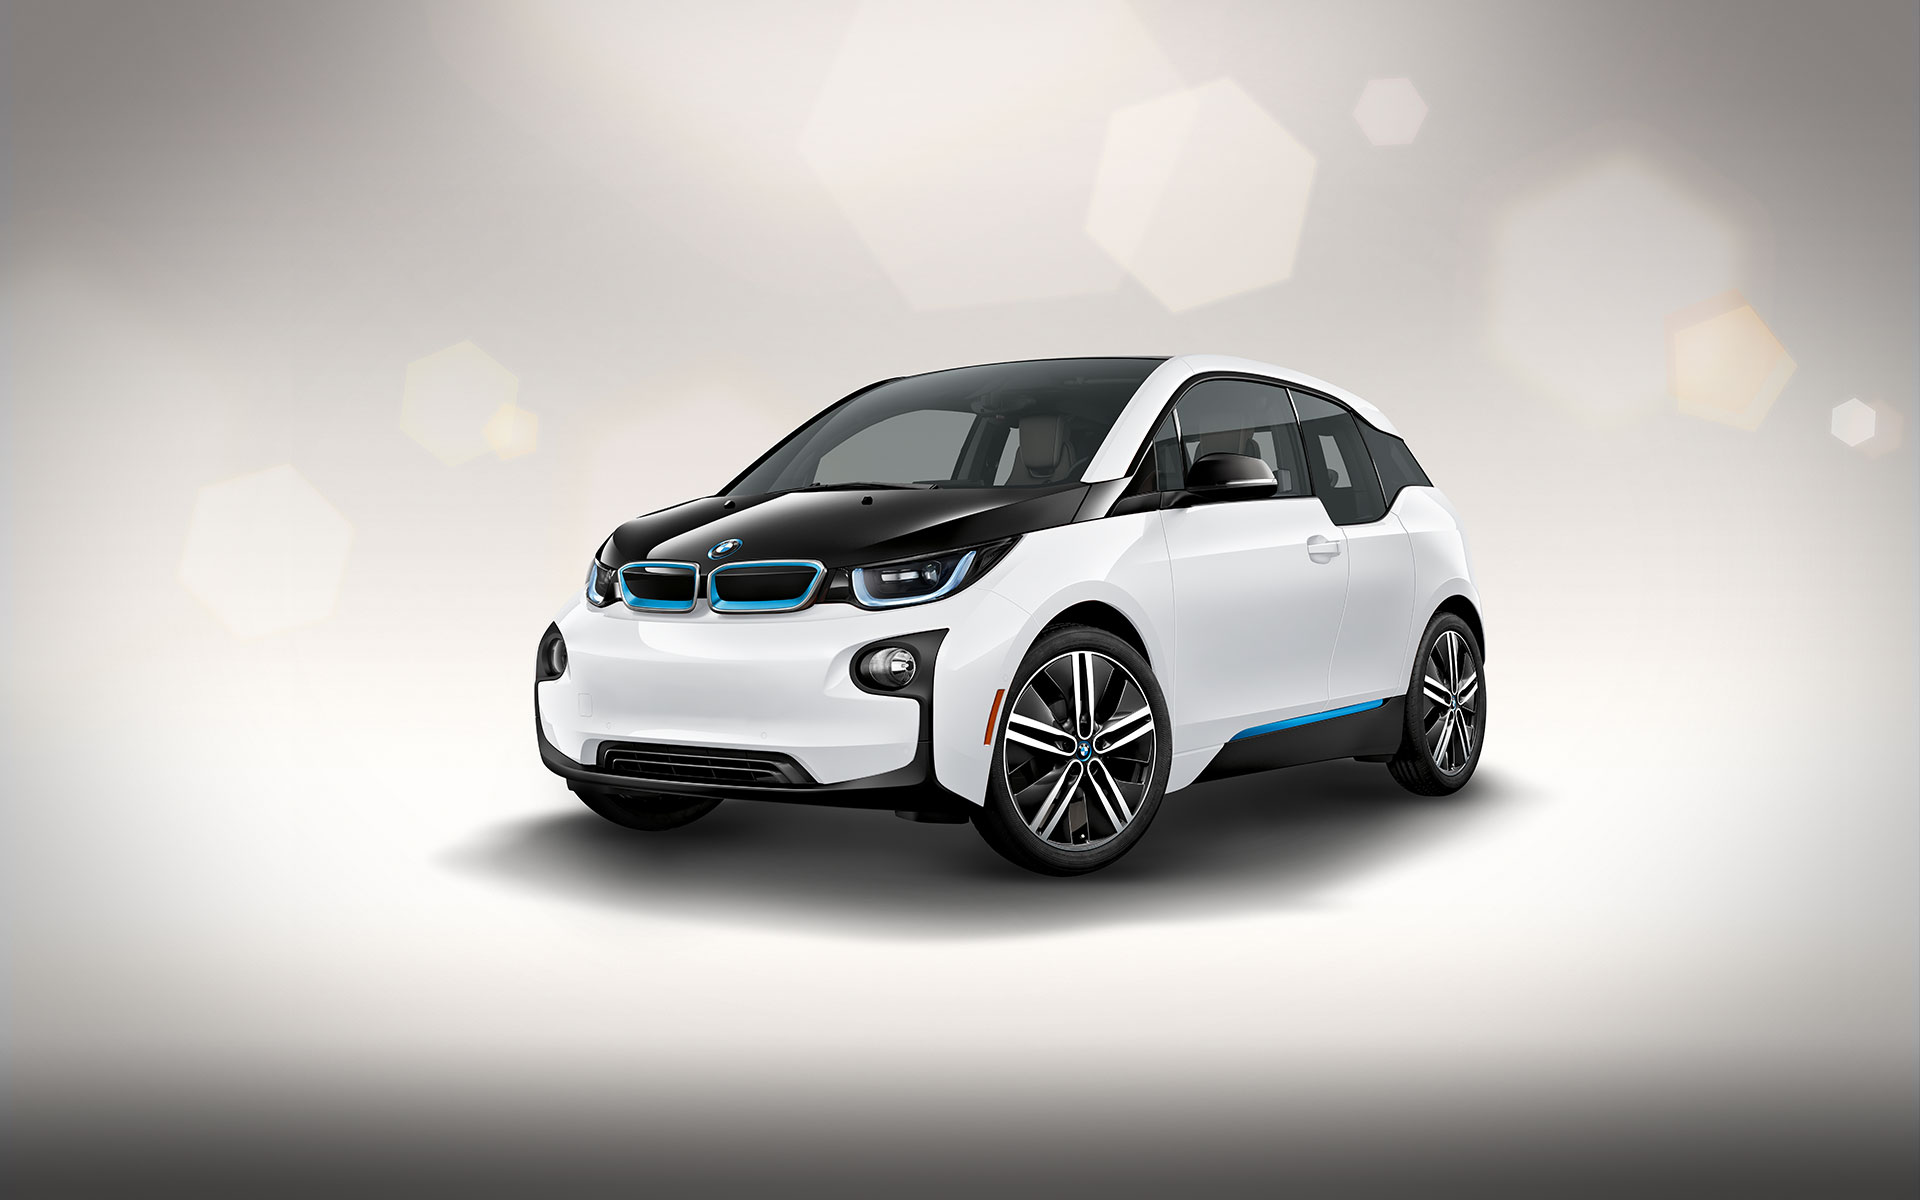 2016 bmw i3 technical specifications and data engine dimensions and mechanical details. Black Bedroom Furniture Sets. Home Design Ideas